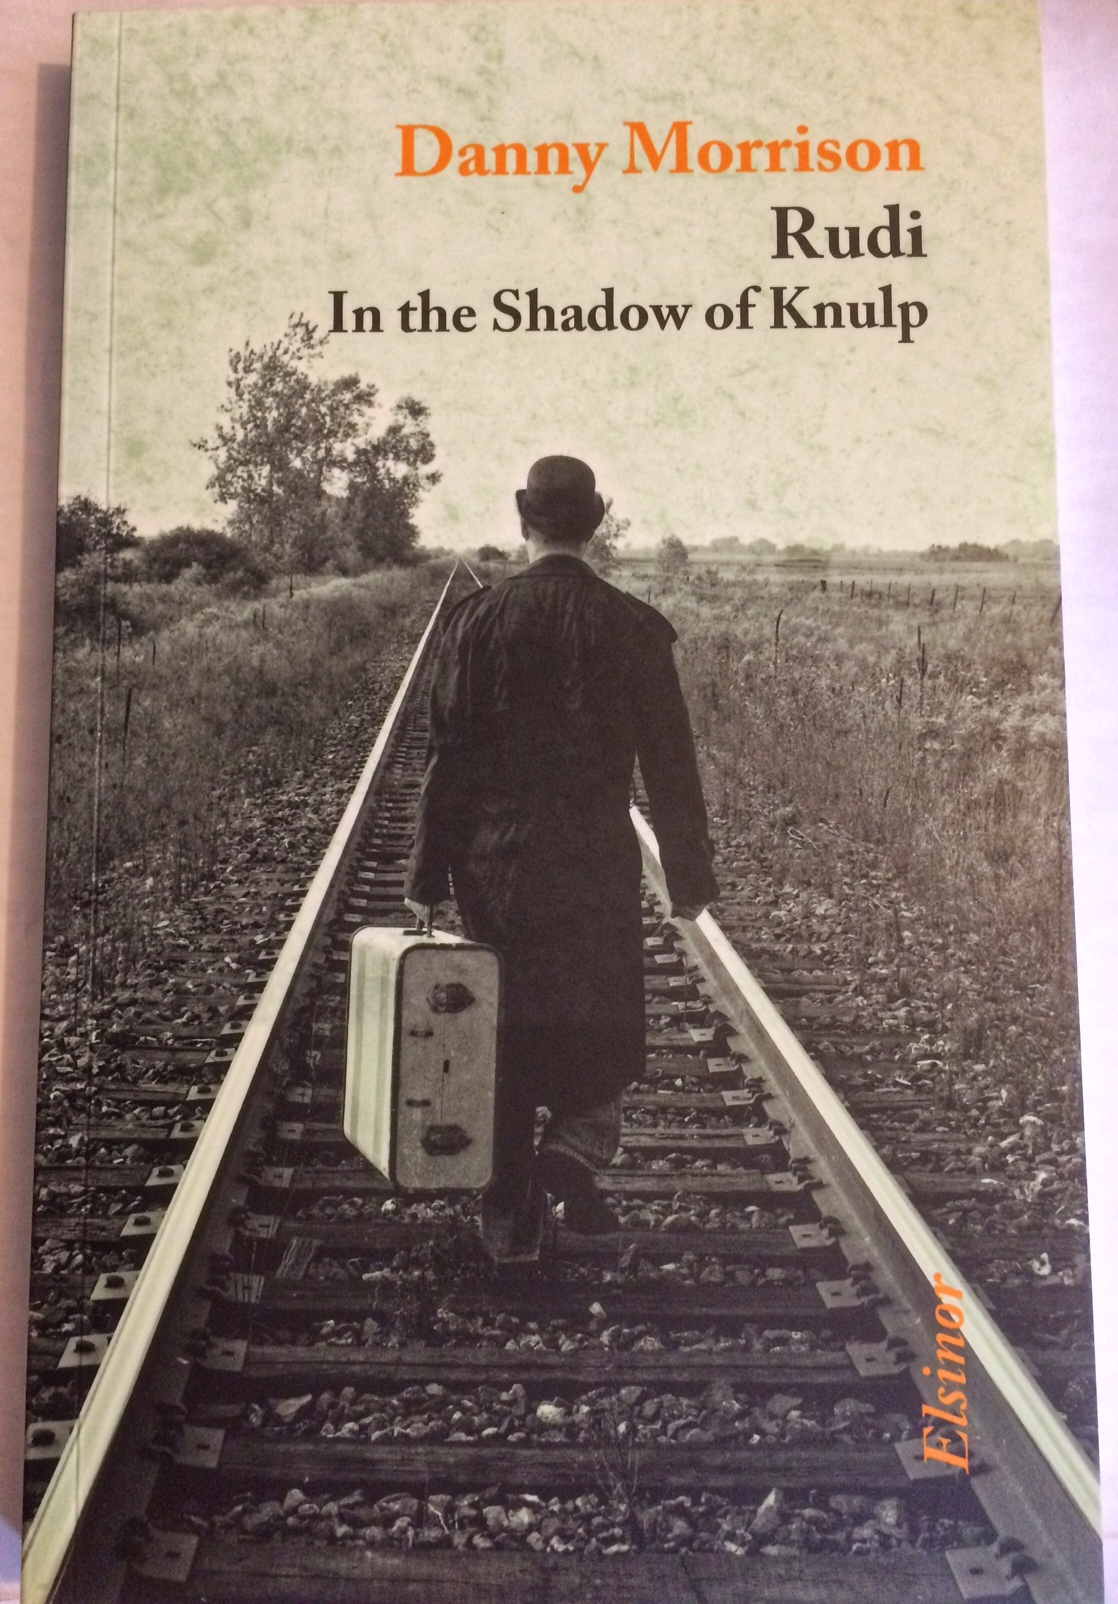 'Rudi - In the Shadow of Knulp, Danny Morrison